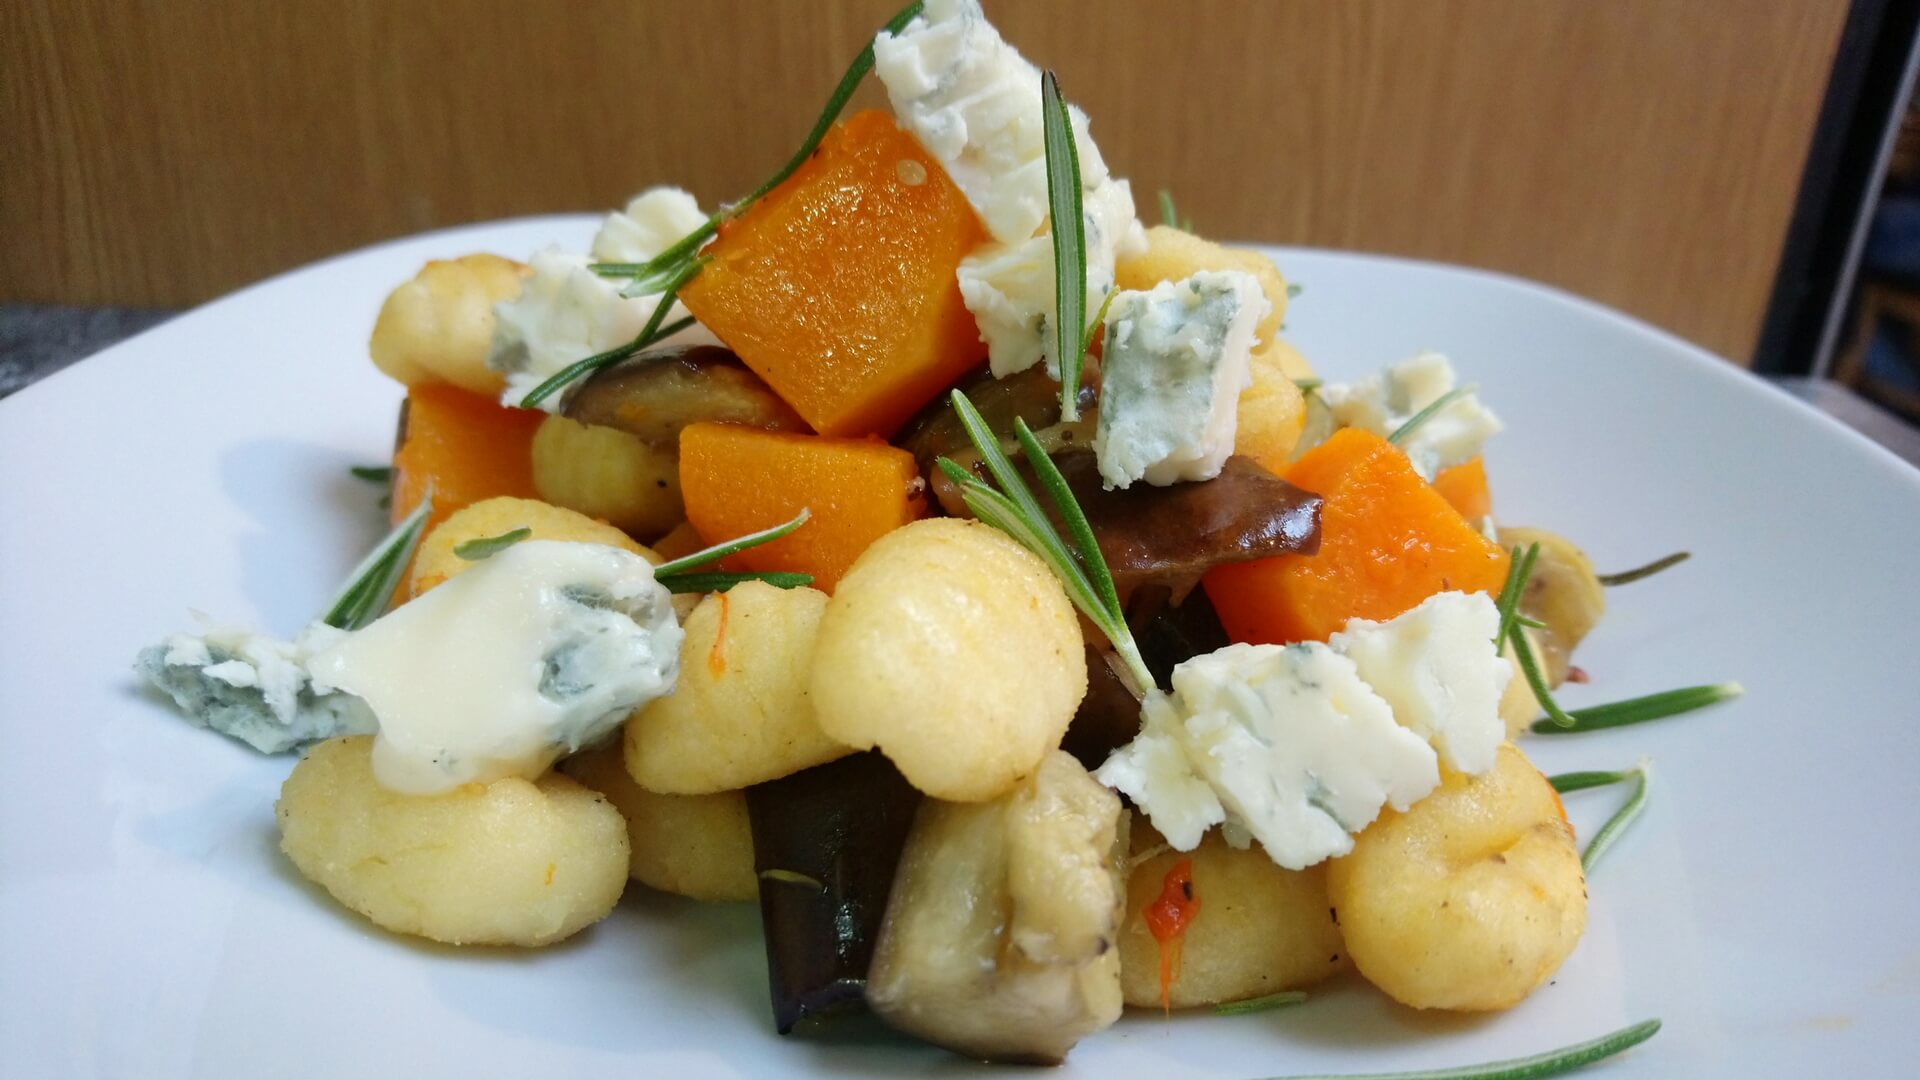 Roasted gnocchi and vegetables